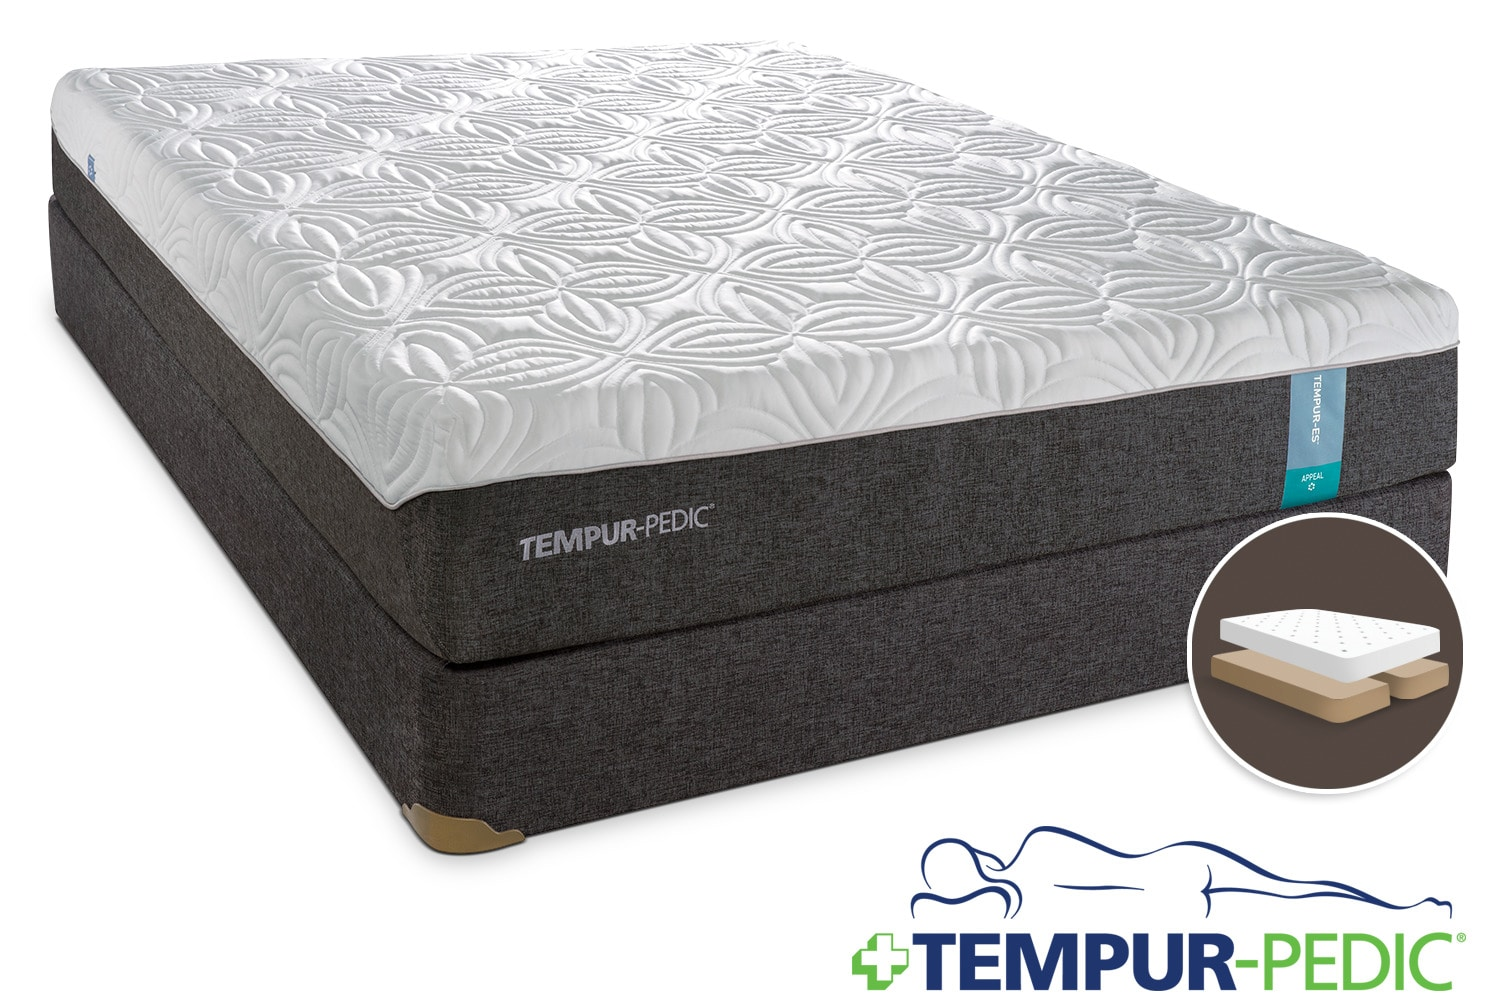 Mattresses and Bedding - Tempur-Pedic Appeal 2.0 Cushion Firm King Mattress and Split Boxspring Set